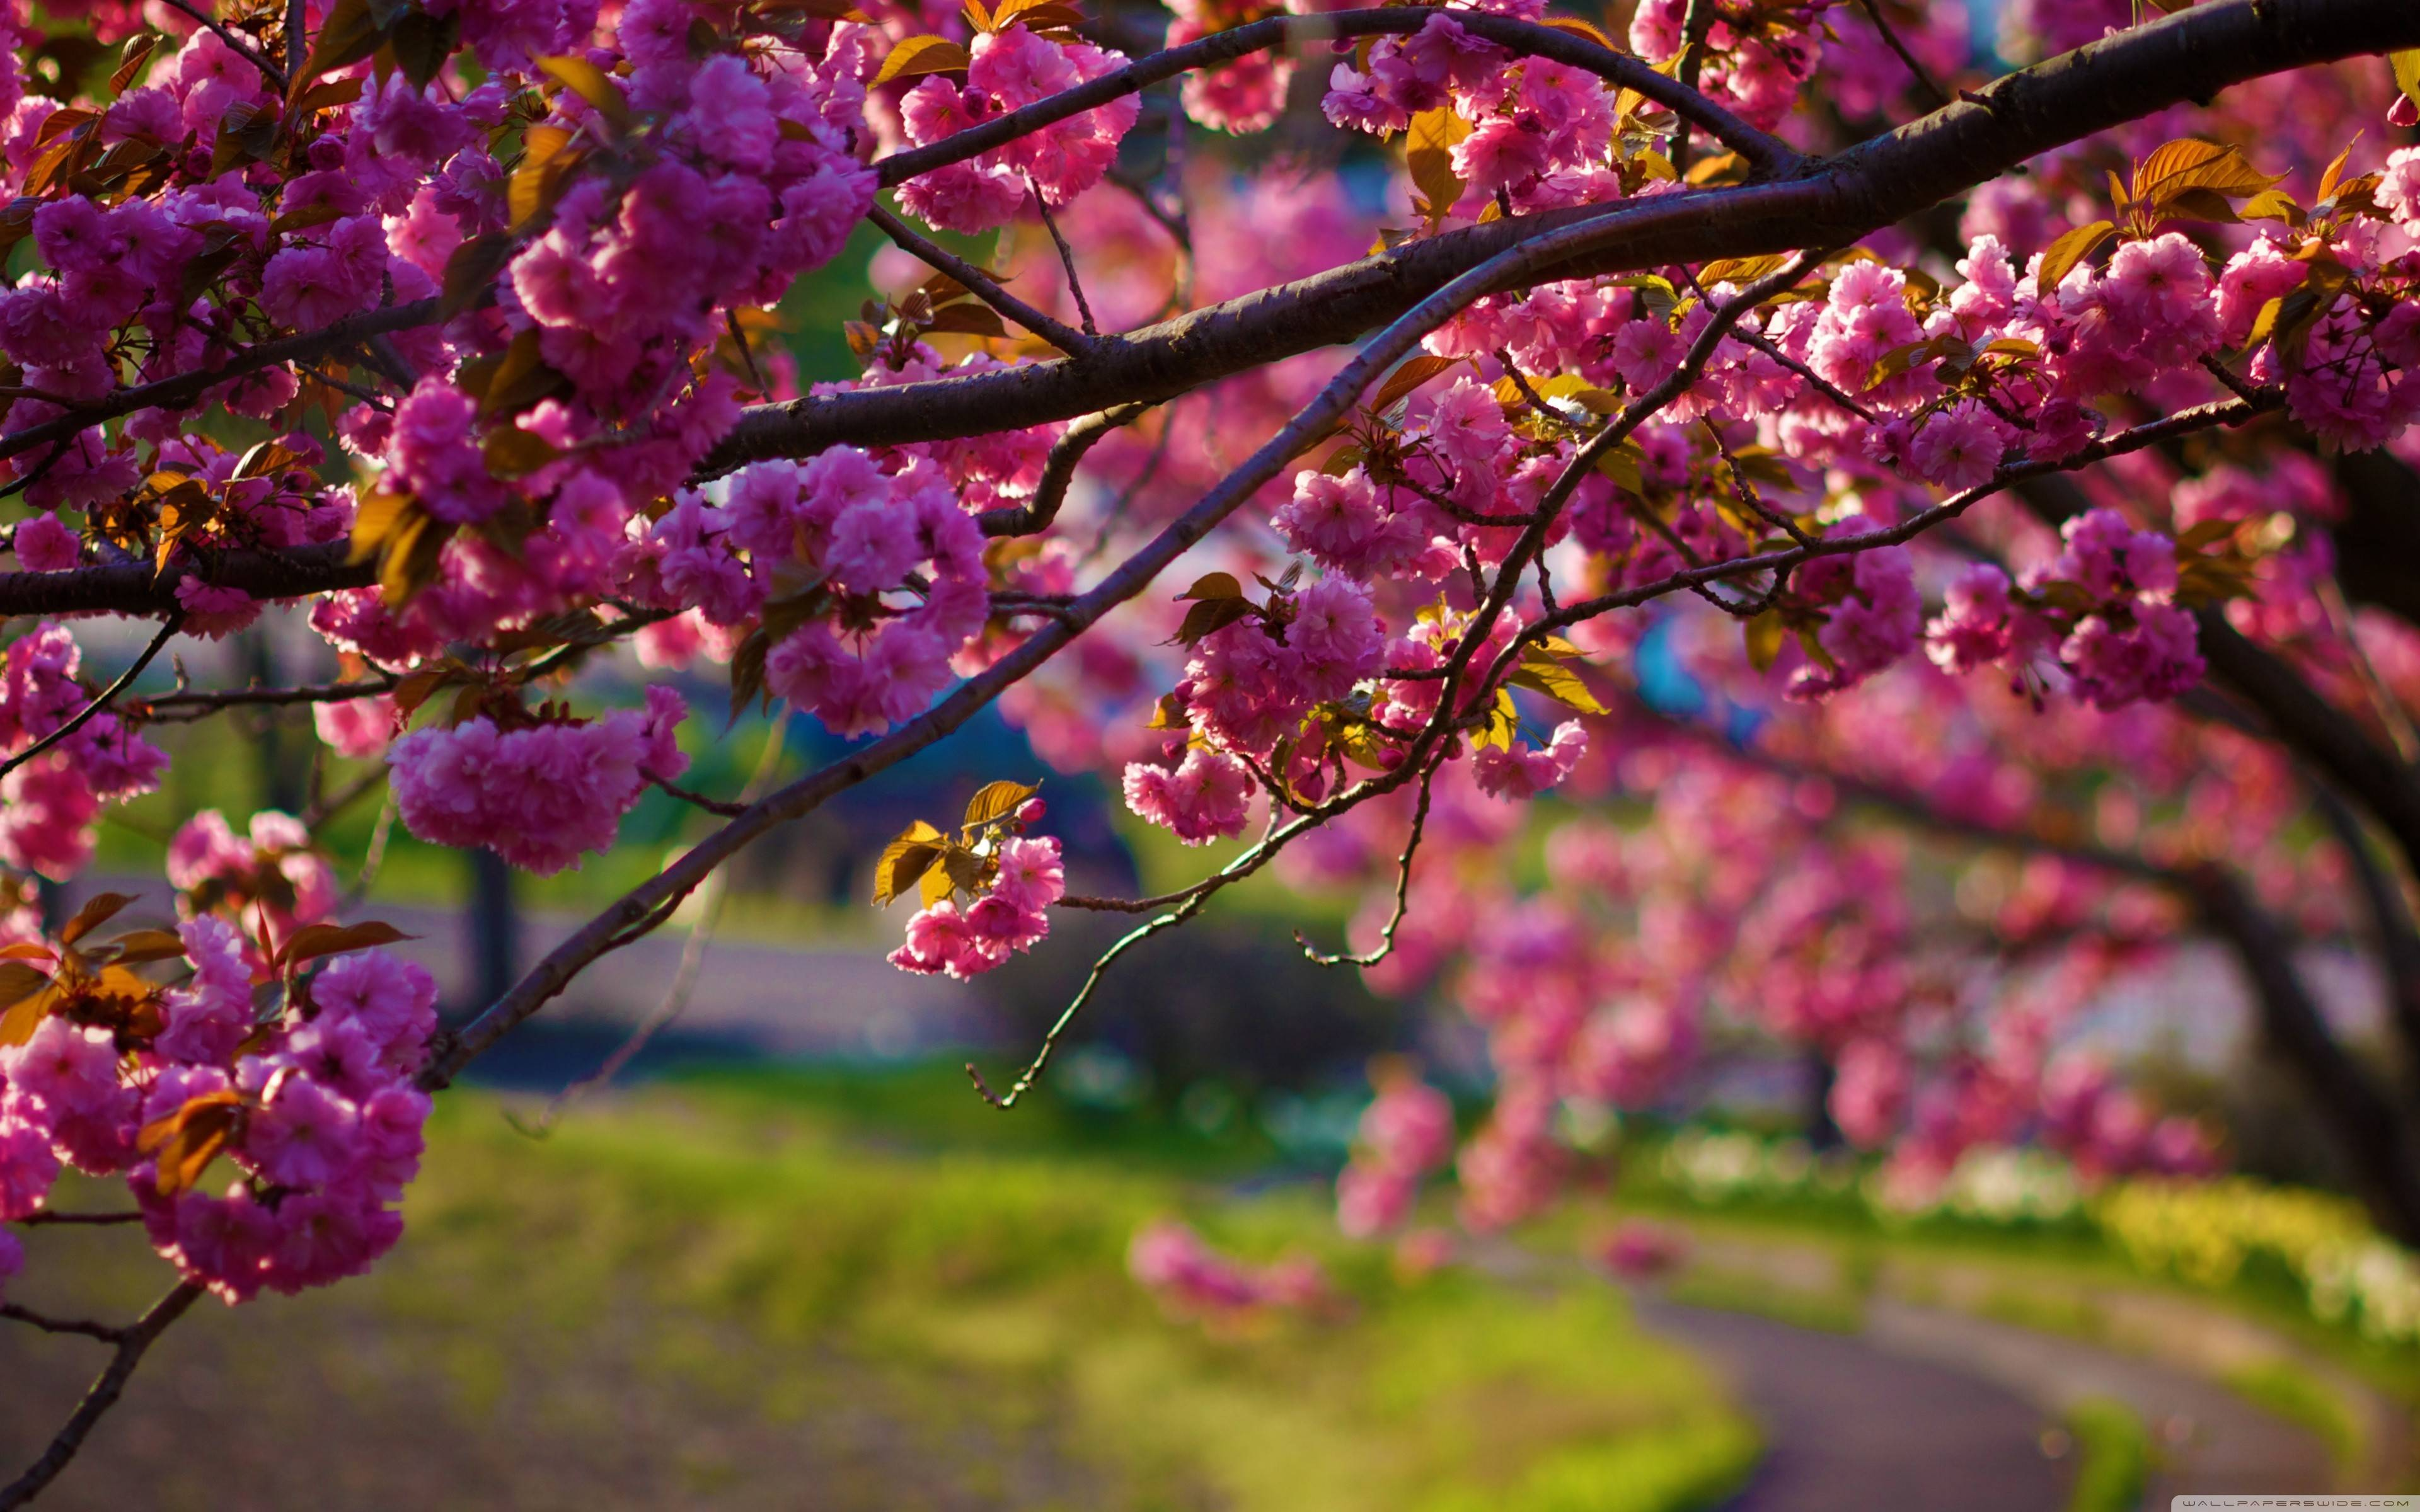 HD Spring Wallpapers For Desktop 3840x2400